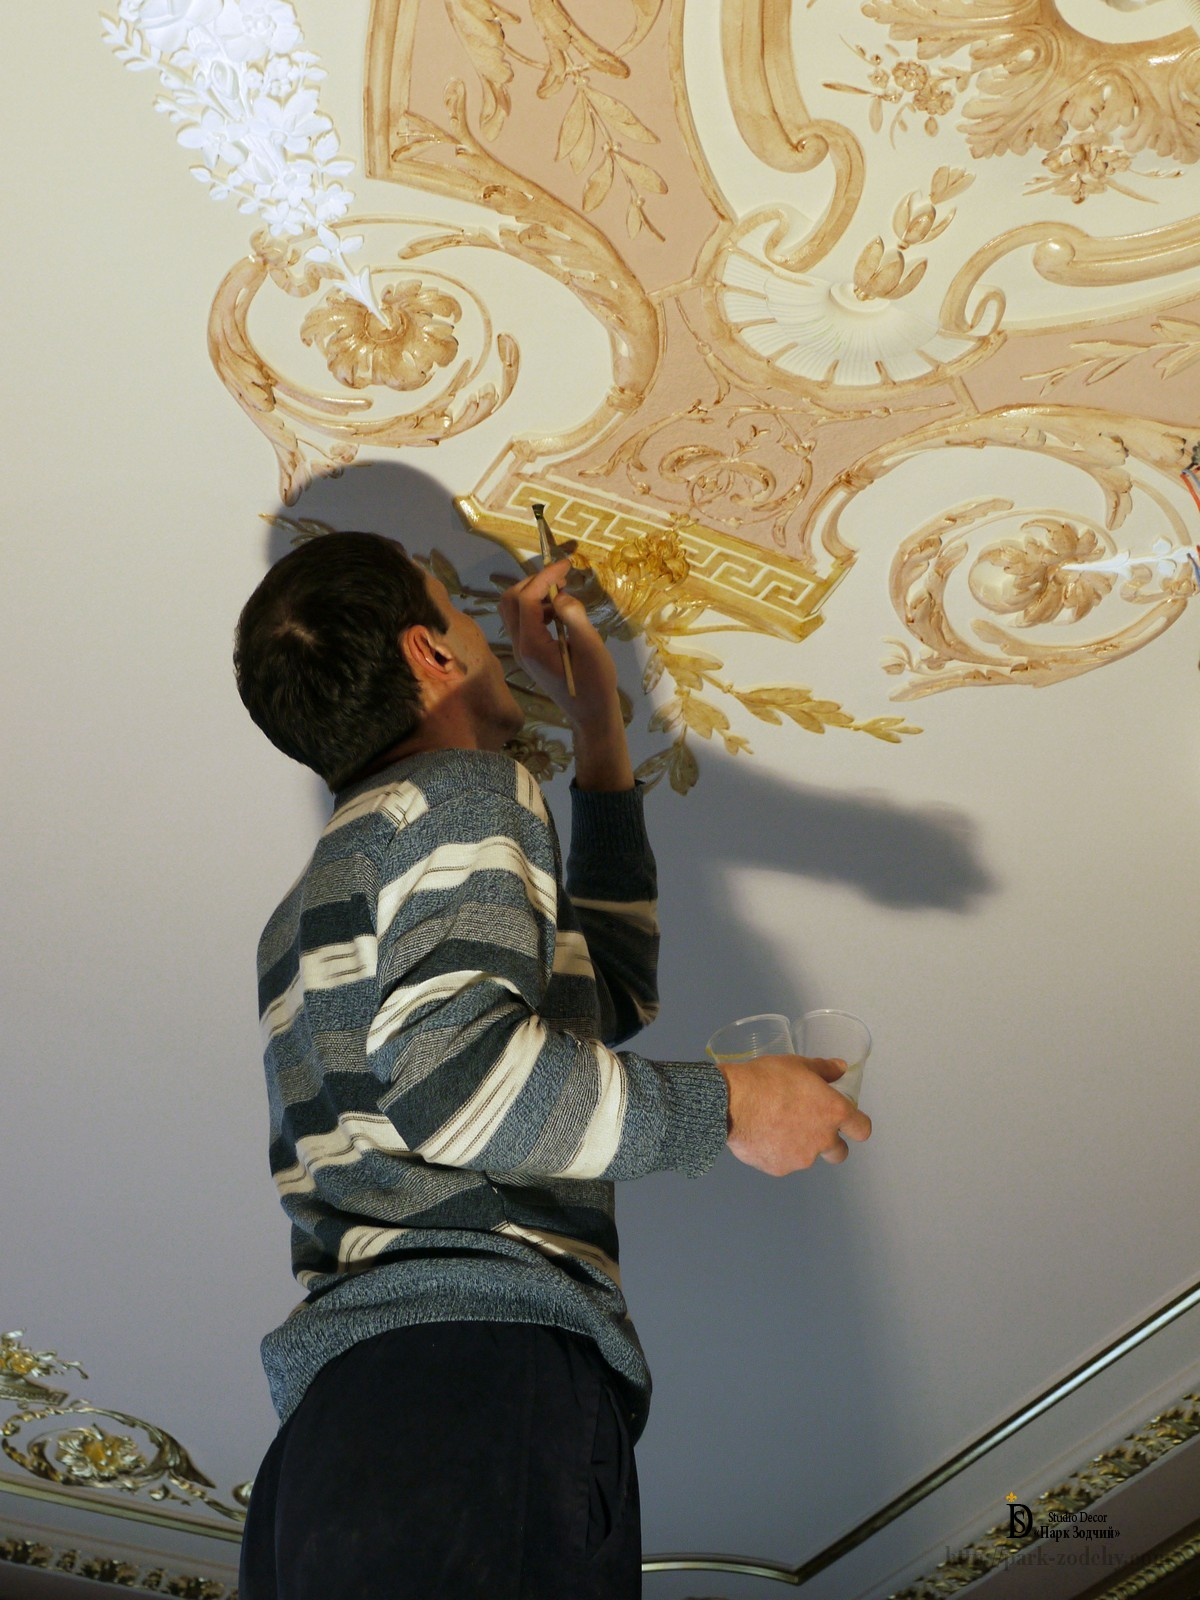 Applying nail Polish in front of the gilt stucco outlet